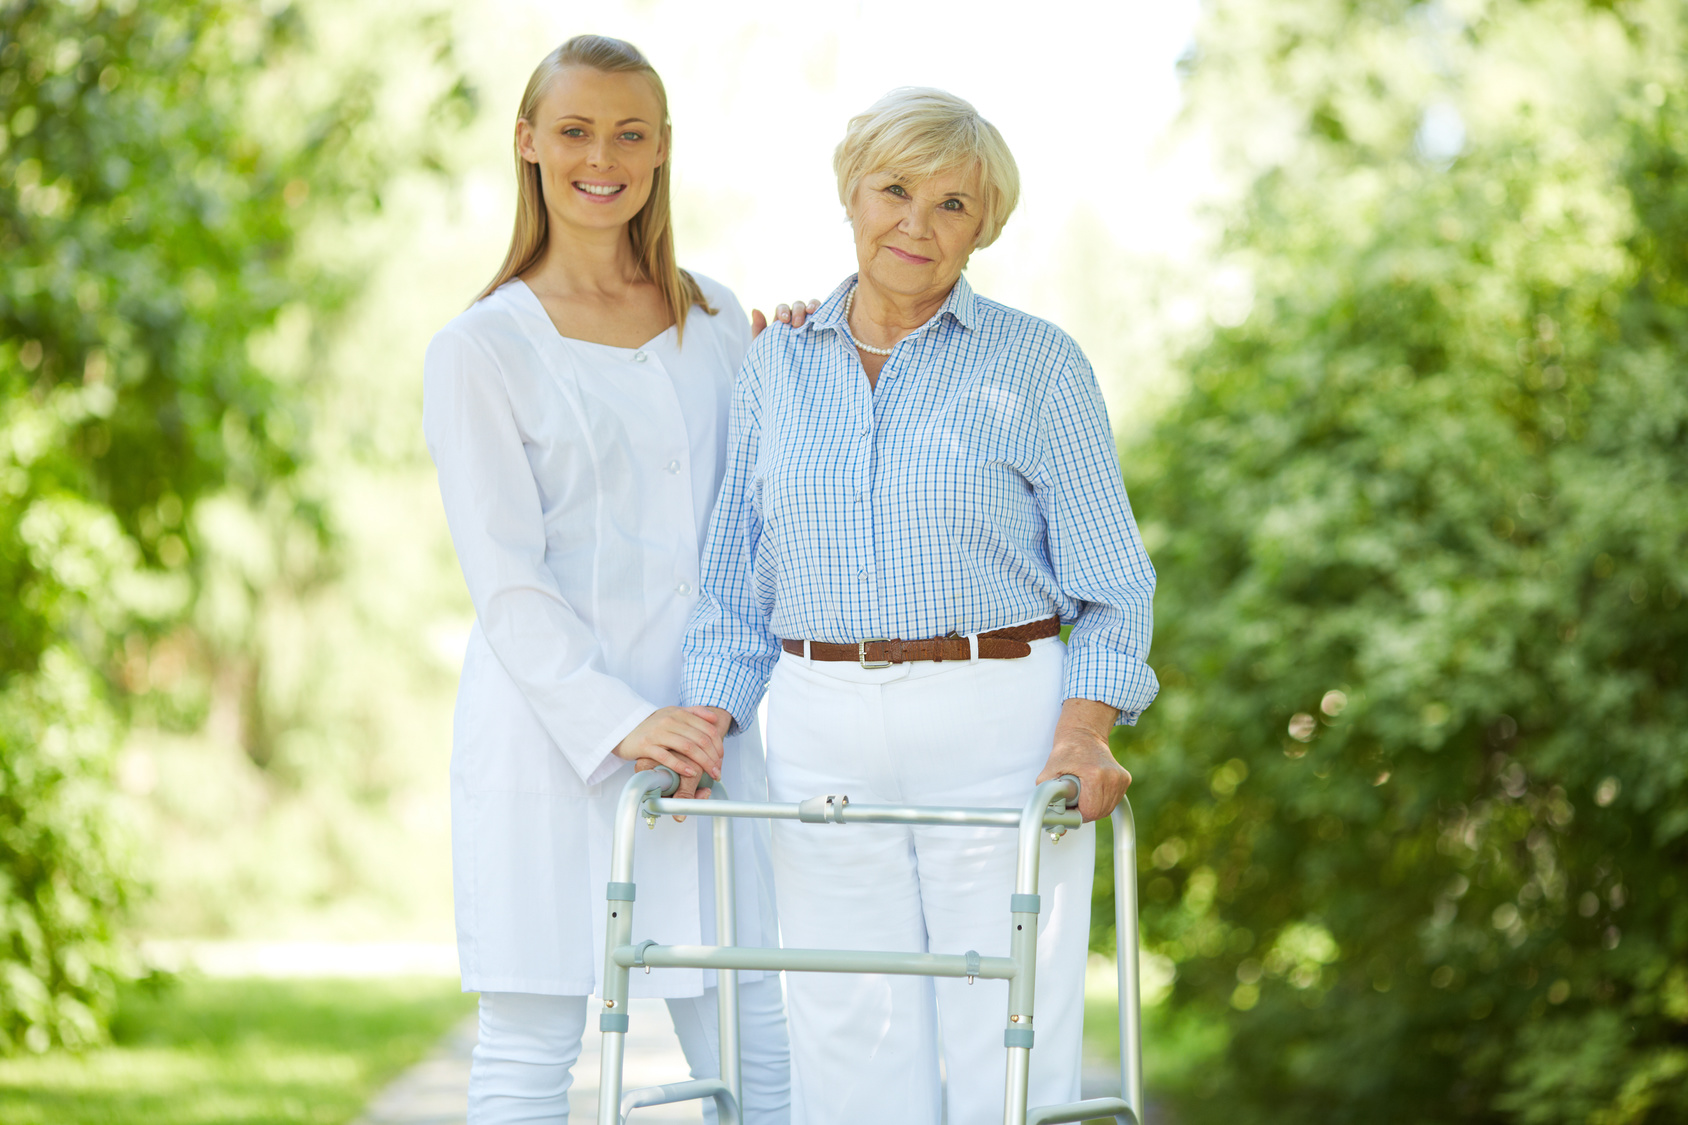 How to Help My Frail Elderly Parents Remain in Their Home